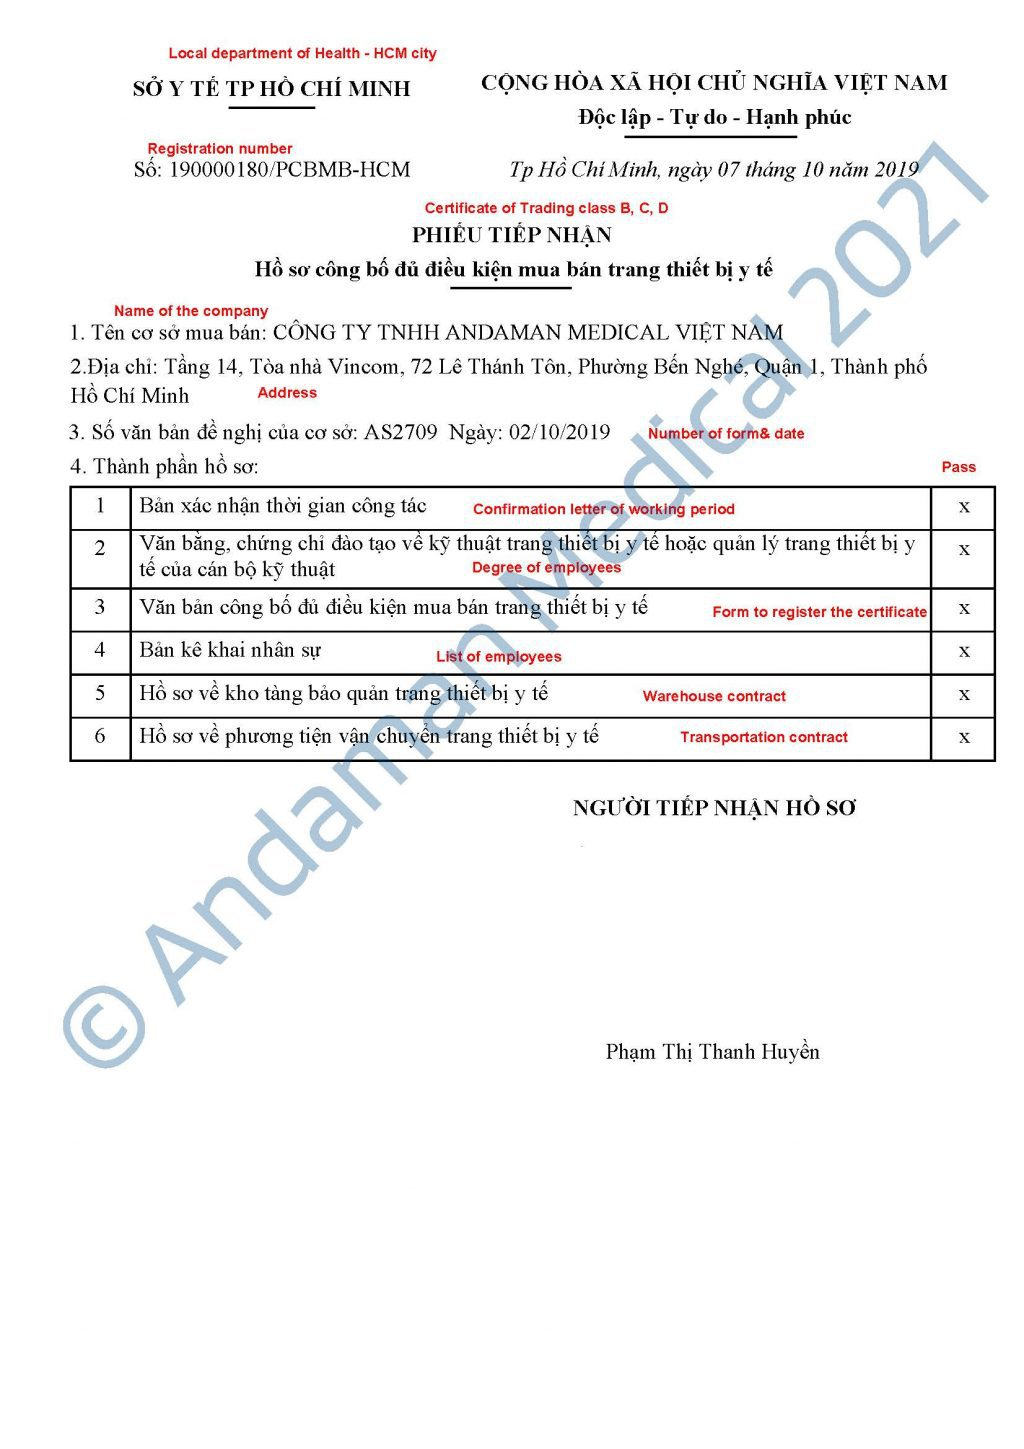 Andaman Medical Vietnam Certificate of Trading Class B C D Medical Devices